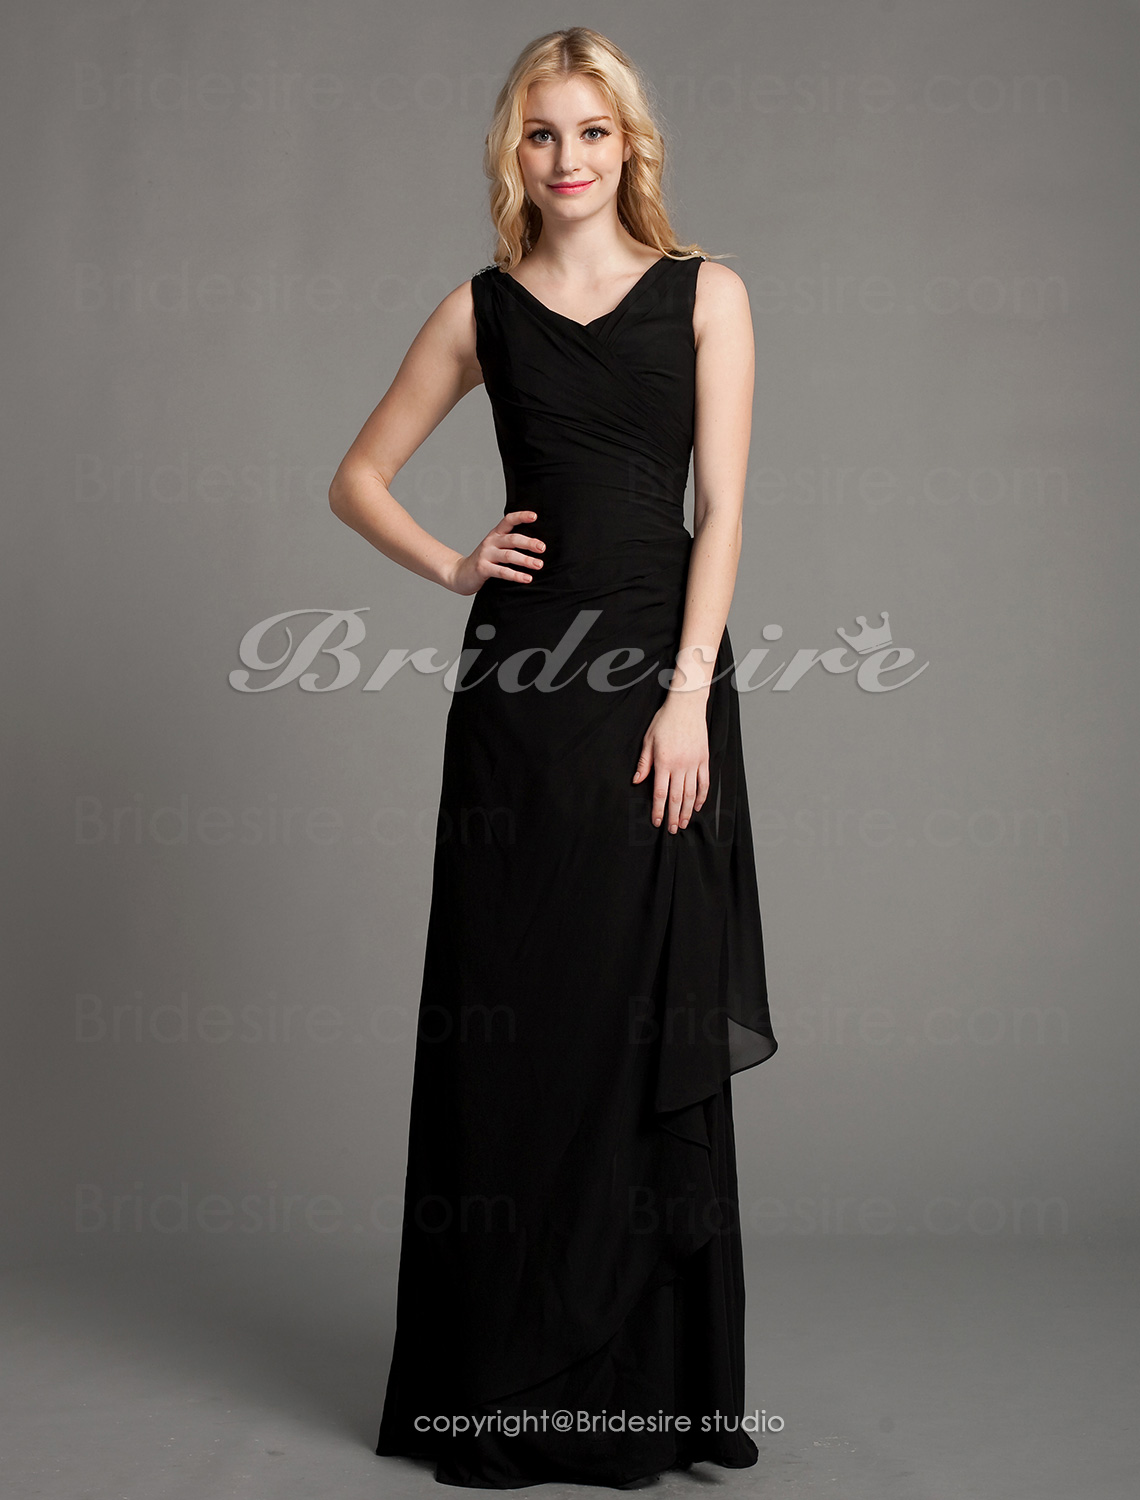 Sheath/ Column Floor-length V-neck Matte Satin Chiffon Mother of the Bride Dress